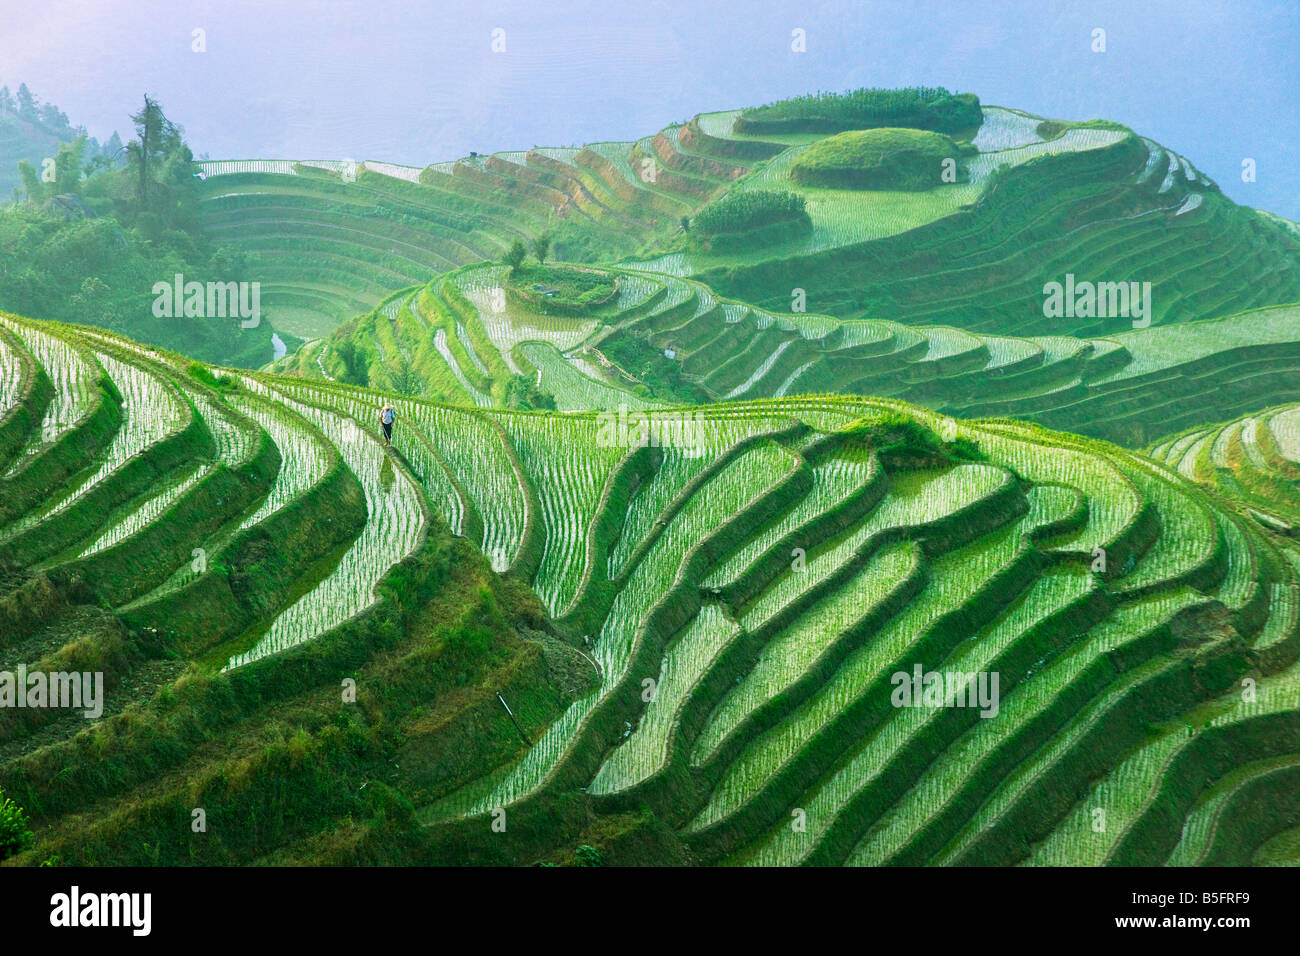 Landscapes Stock Photos & Images, Landscapes Stock Photography - Alamy